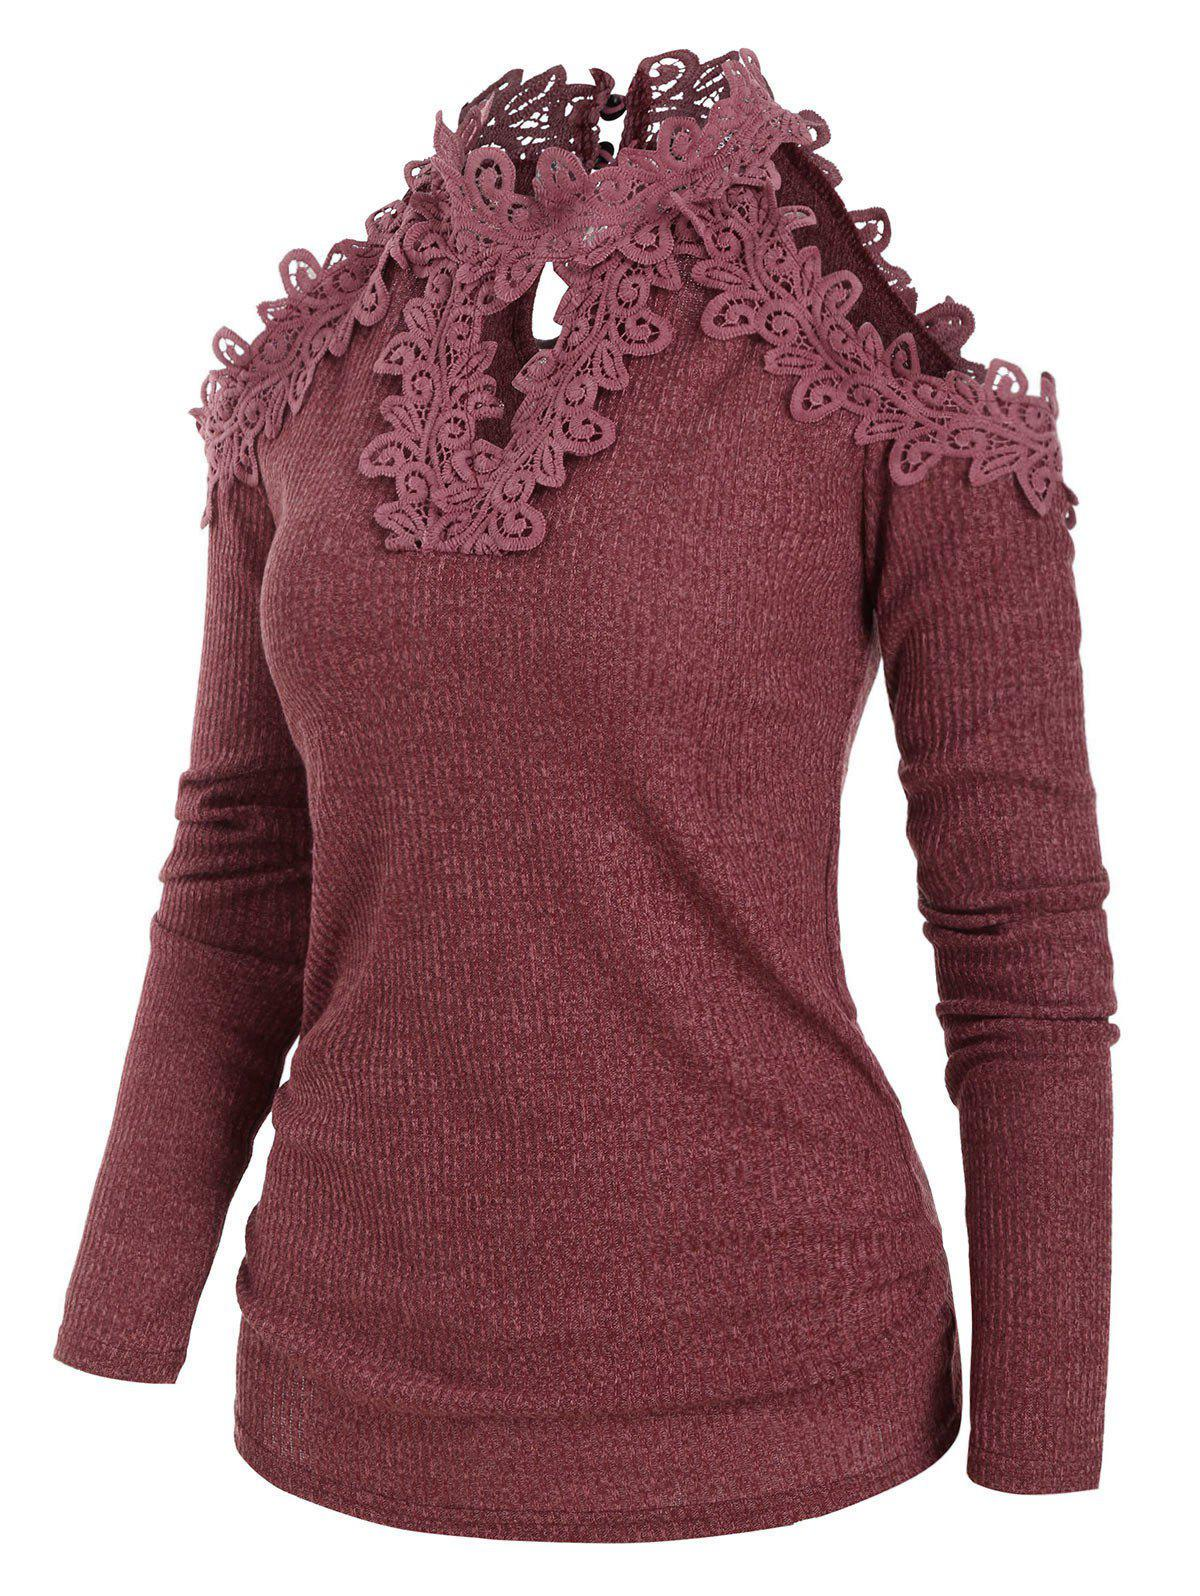 Cheap Open Shoulder Guipure Lace Keyhole Knitwear